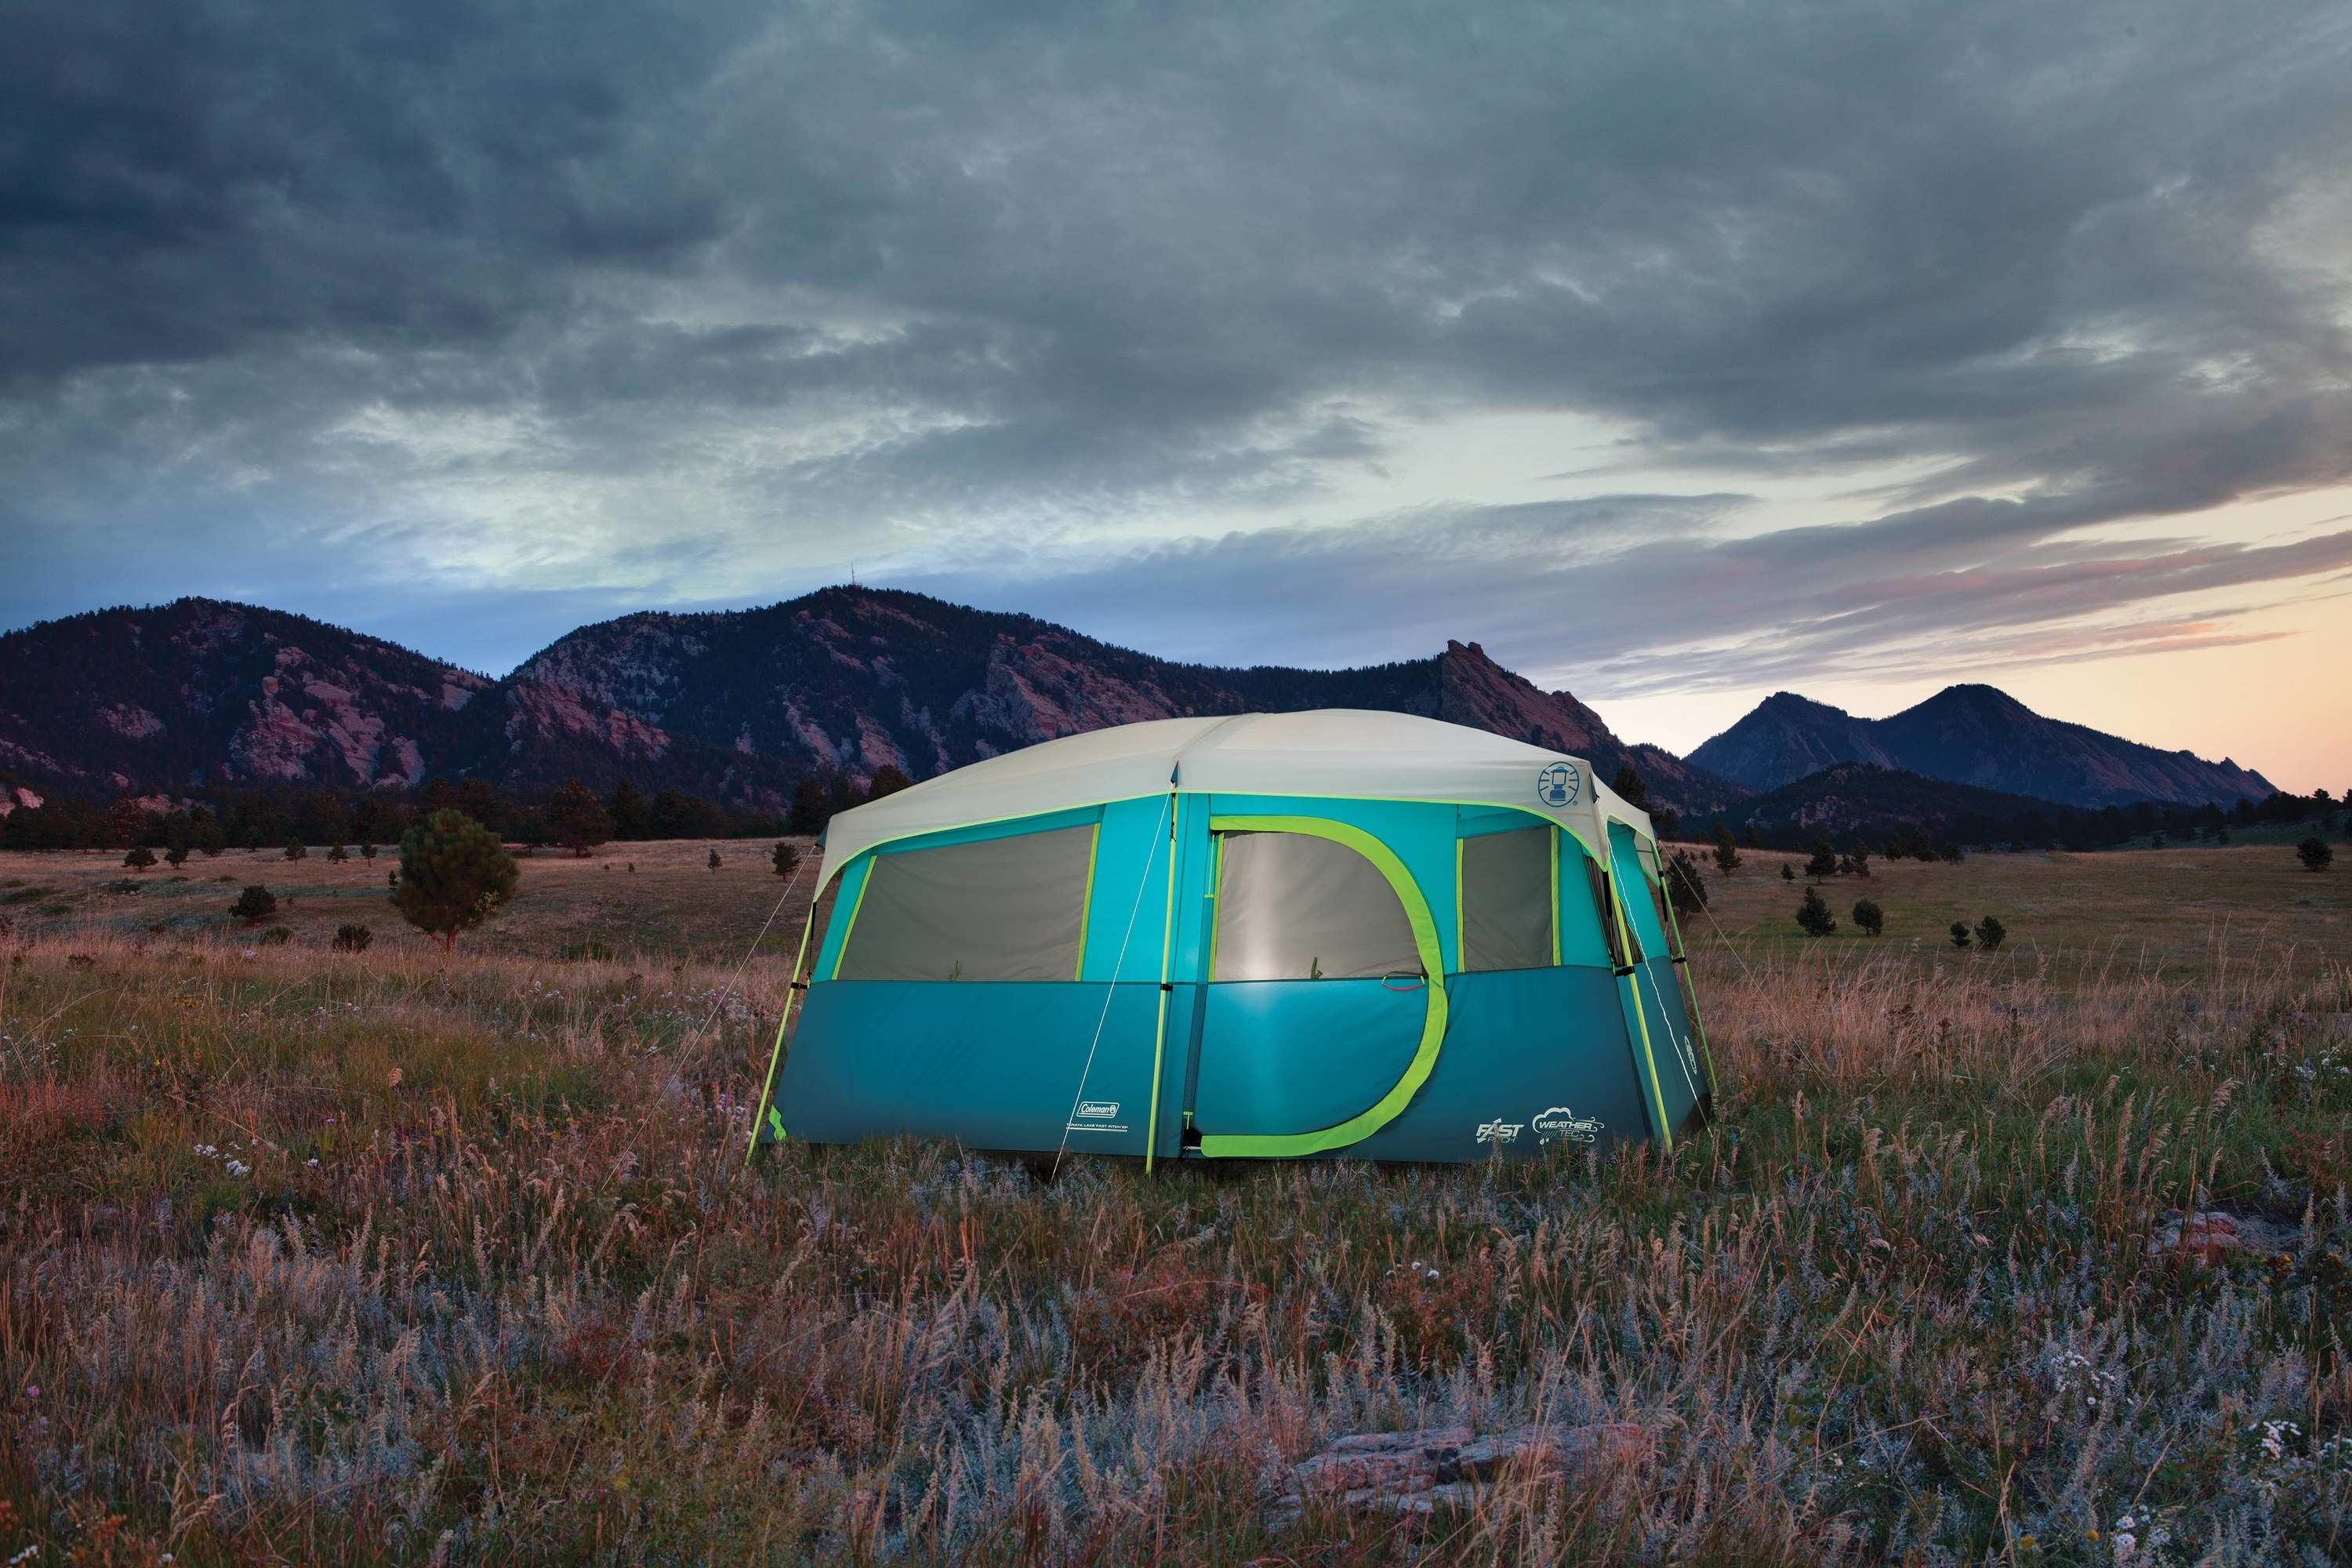 The teal and lime green tent